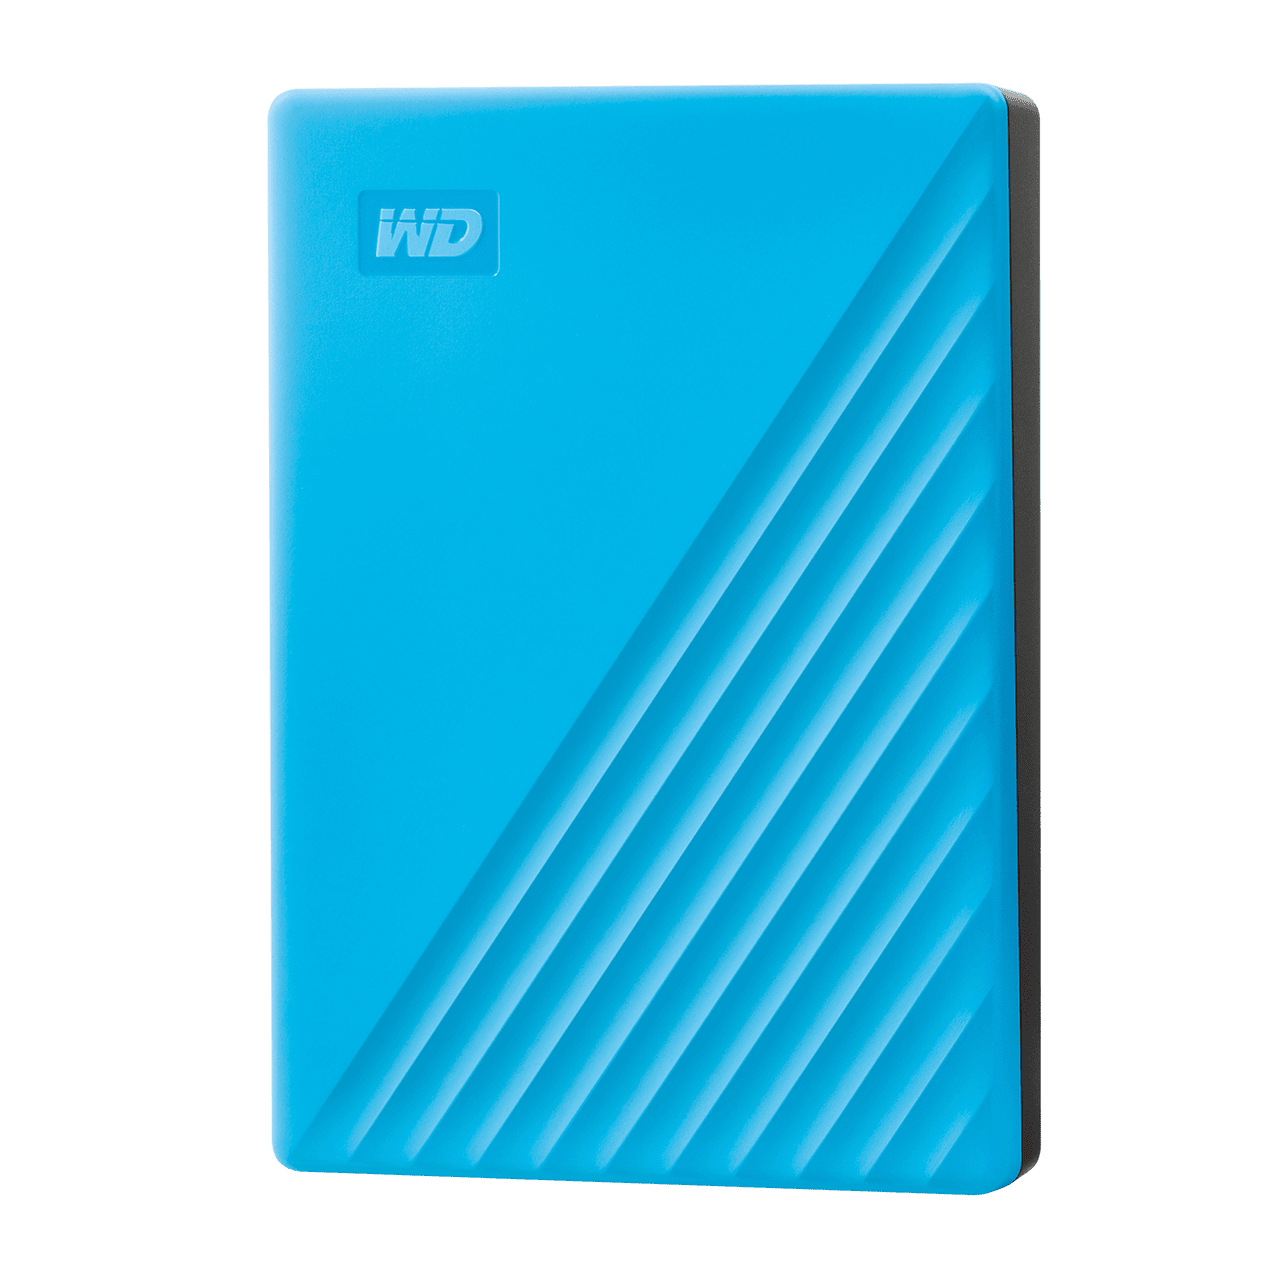 My Passport 4TB Blue - Image10